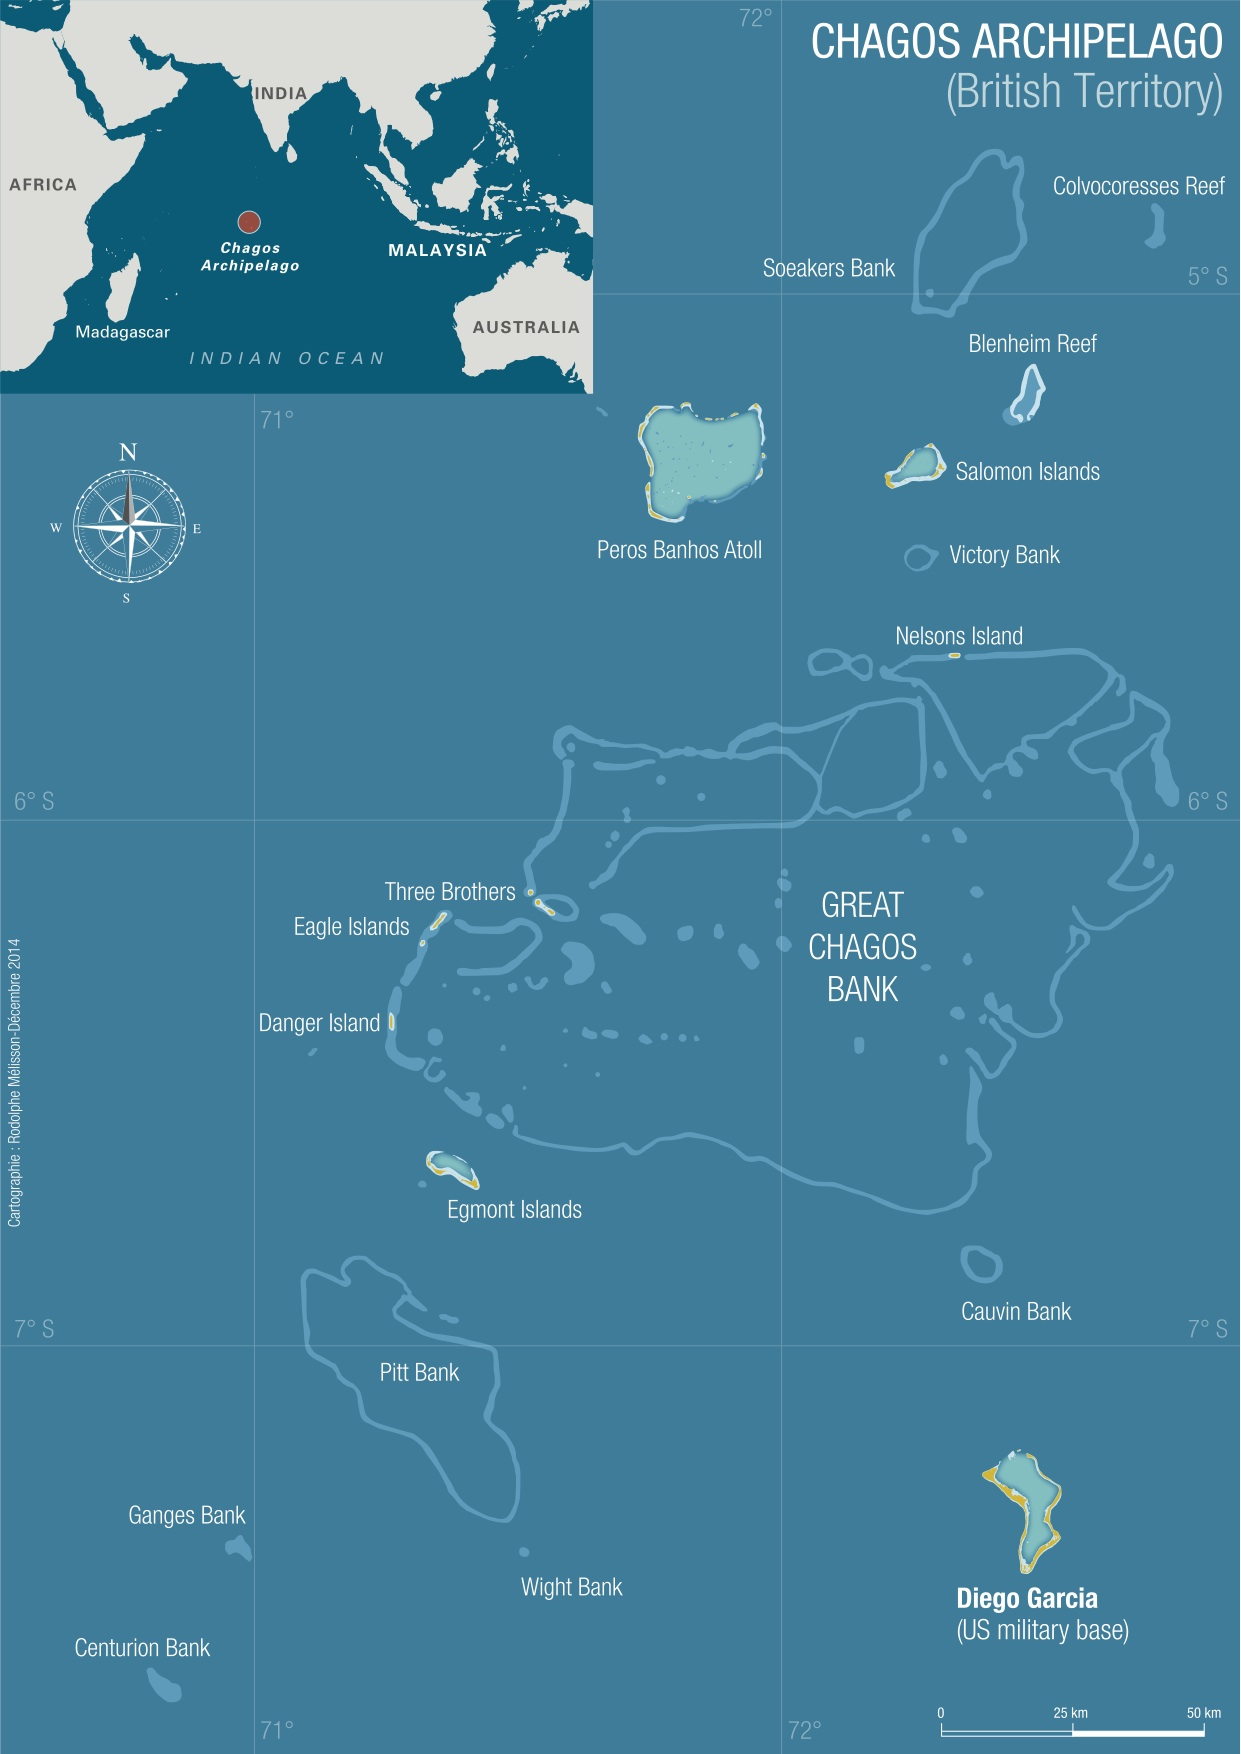 The Chagos Archipelago, British Territory. Licensed under Creative Commons.